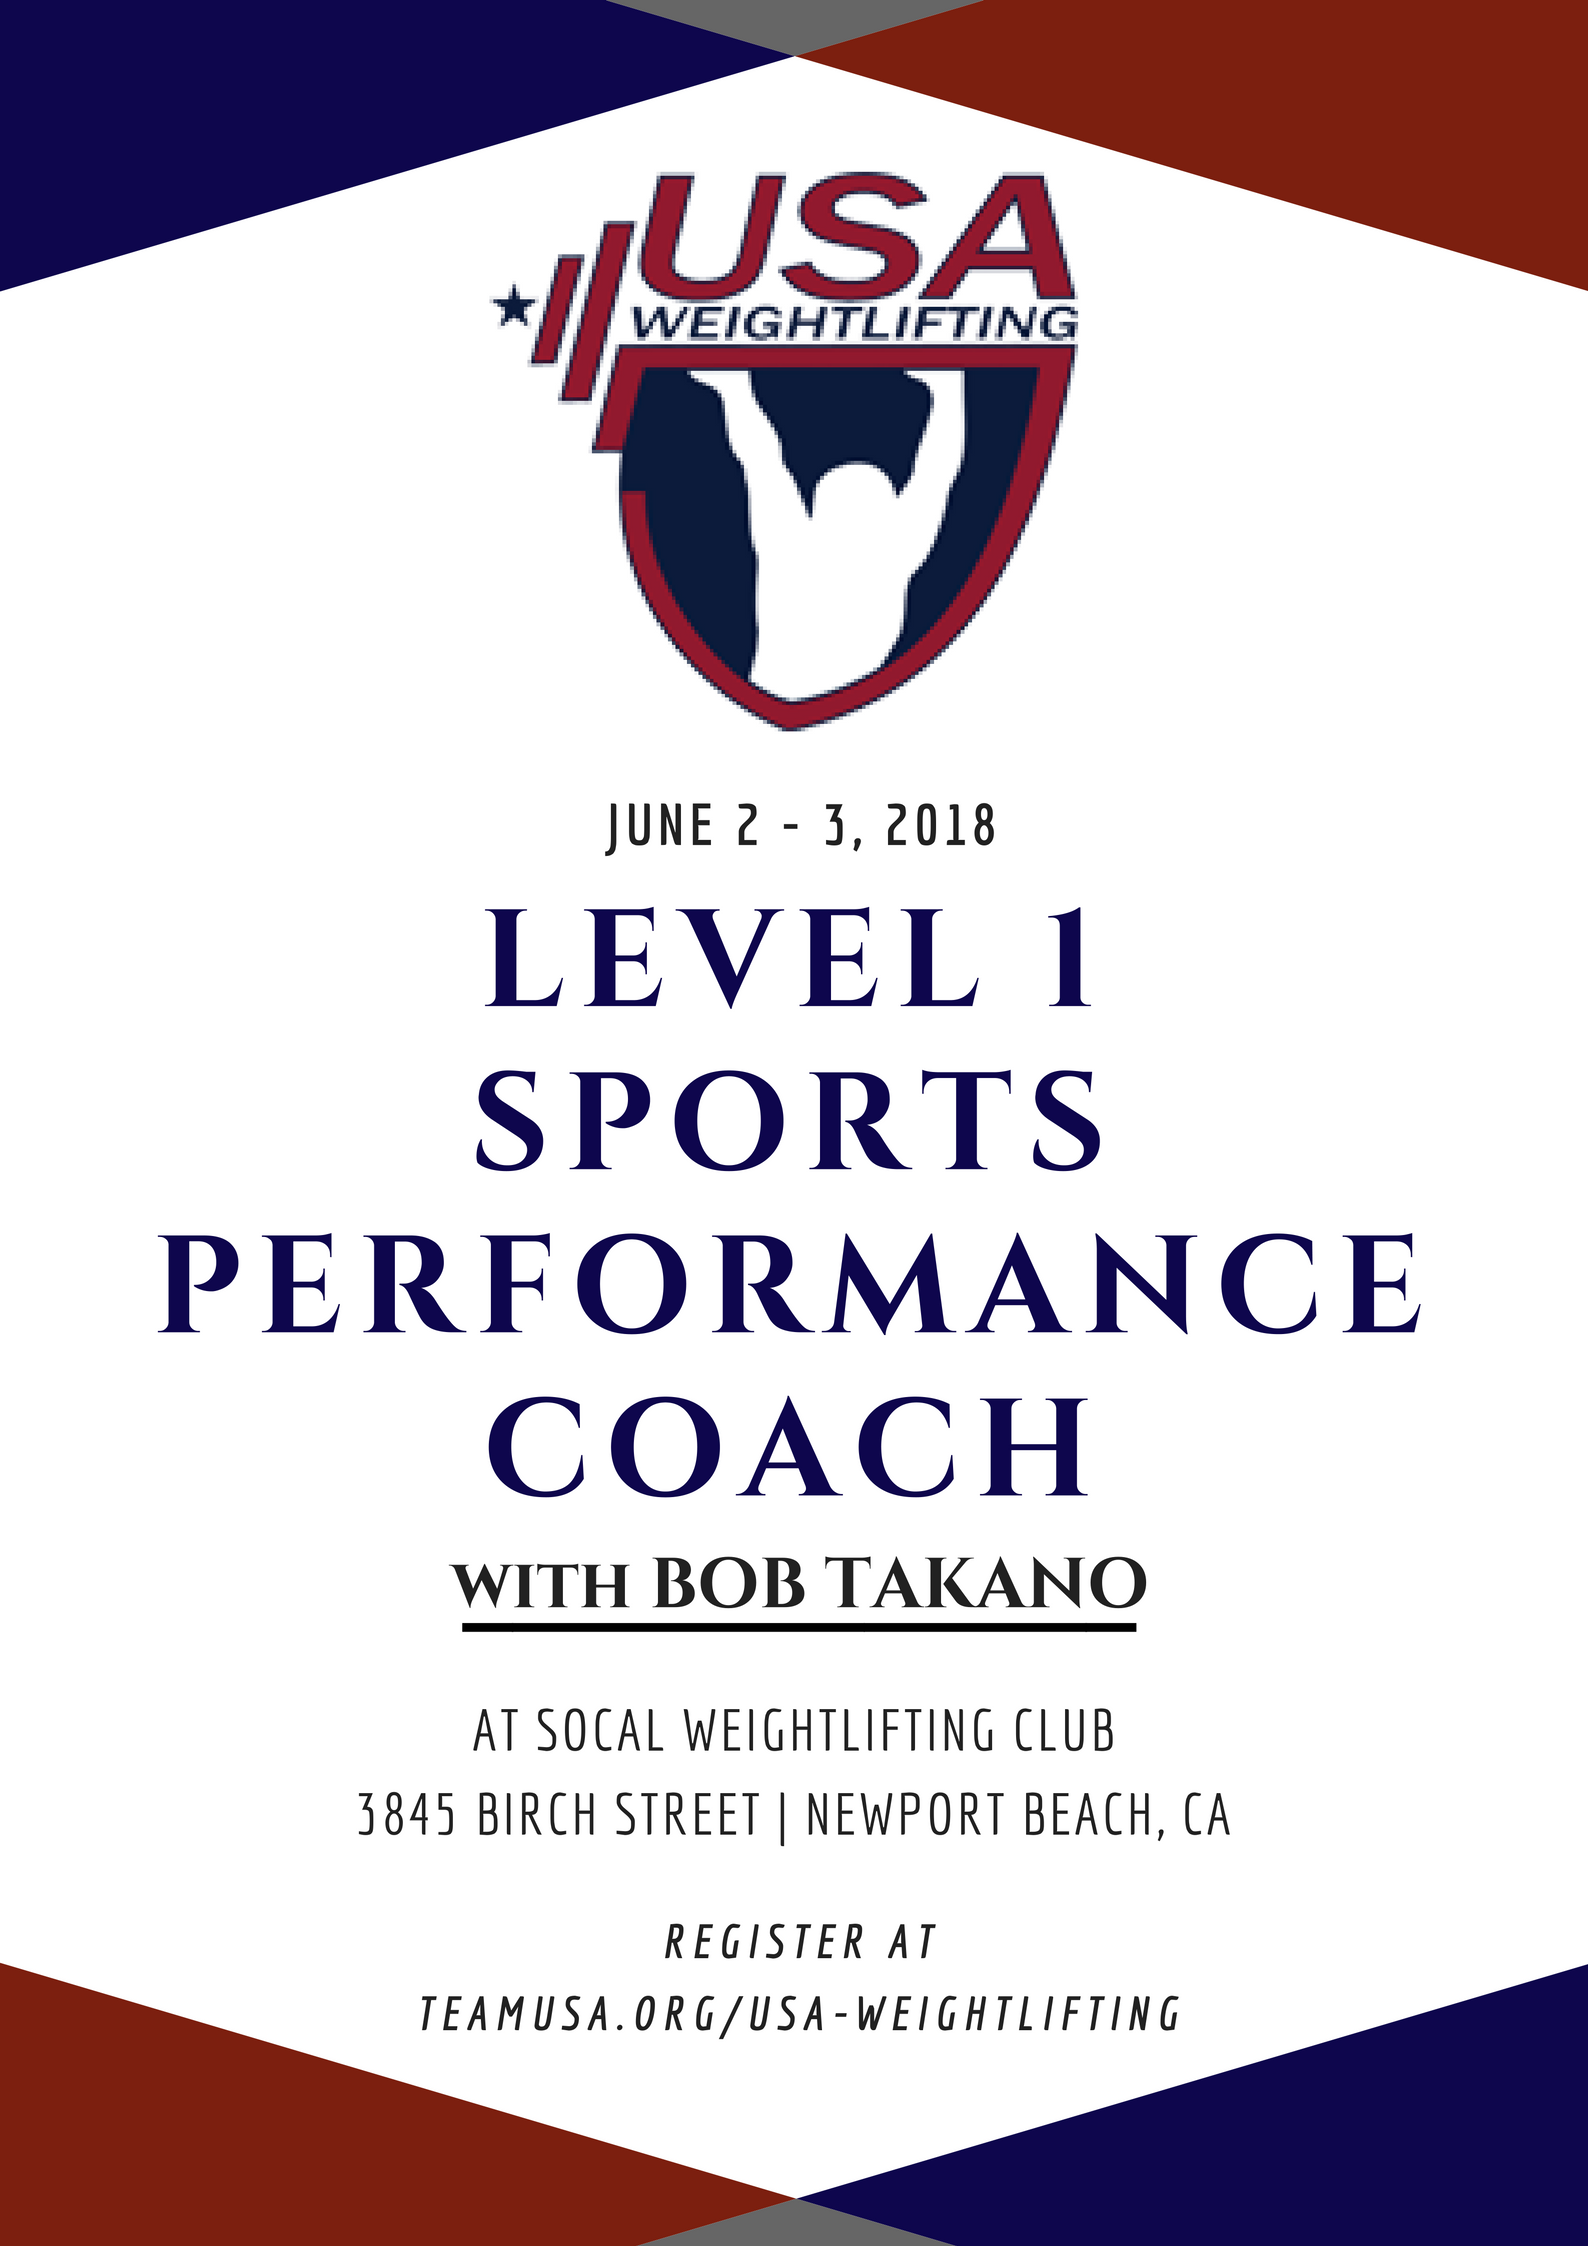 Usaw Level 1 Sports Performance Coaching Course Socal Weightlifting